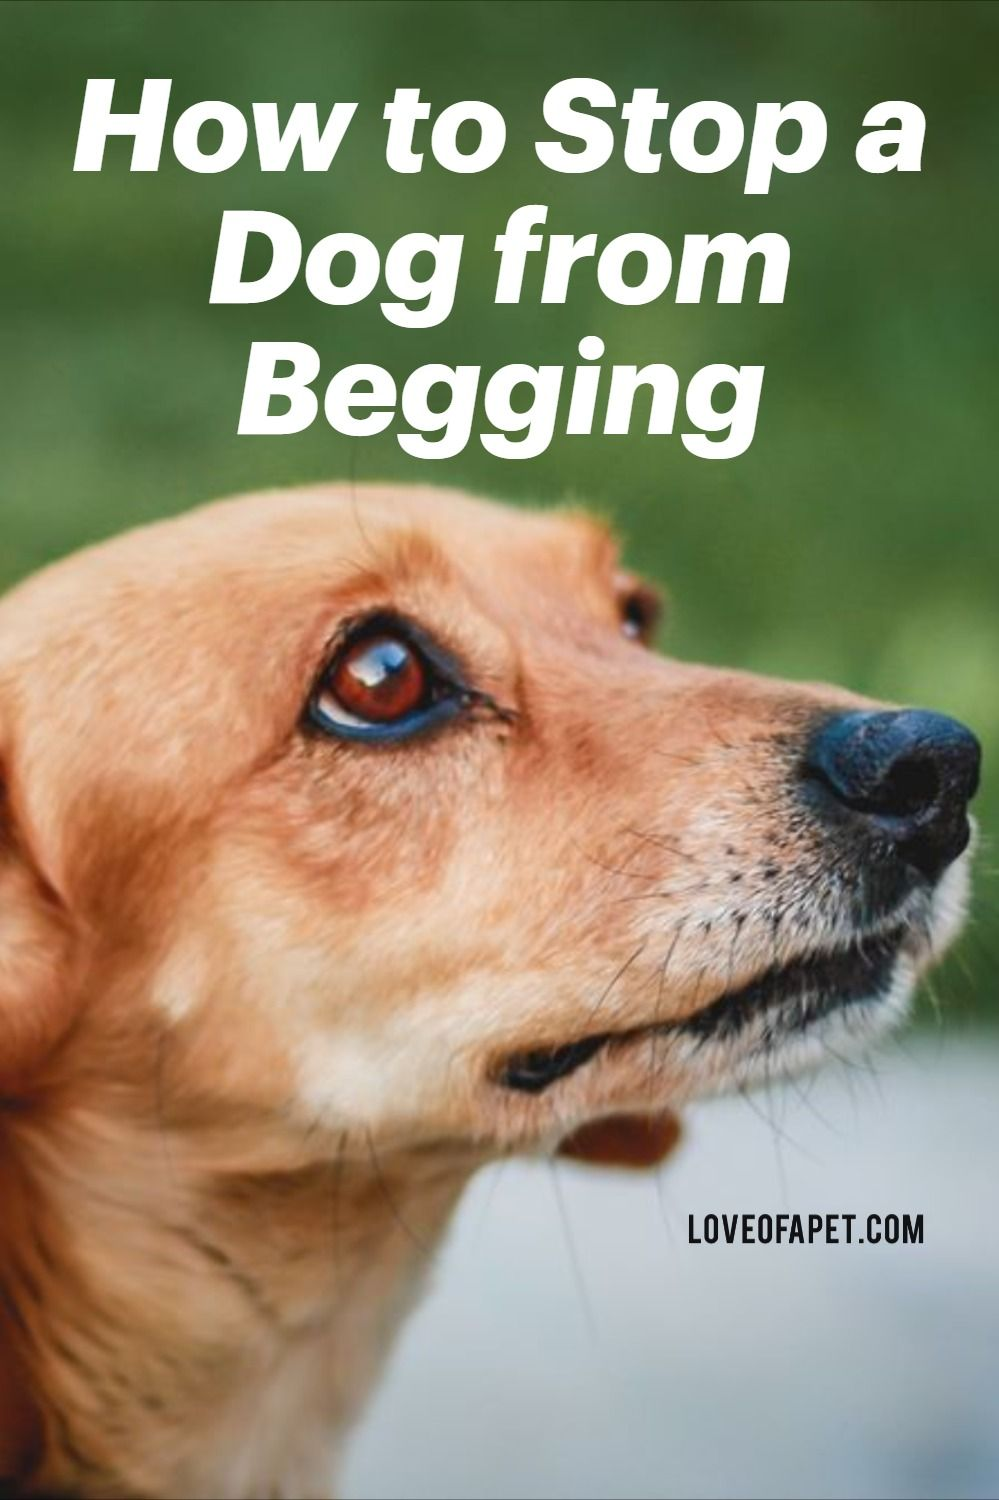 How to stop a dog from begging 7 easy steps love of a